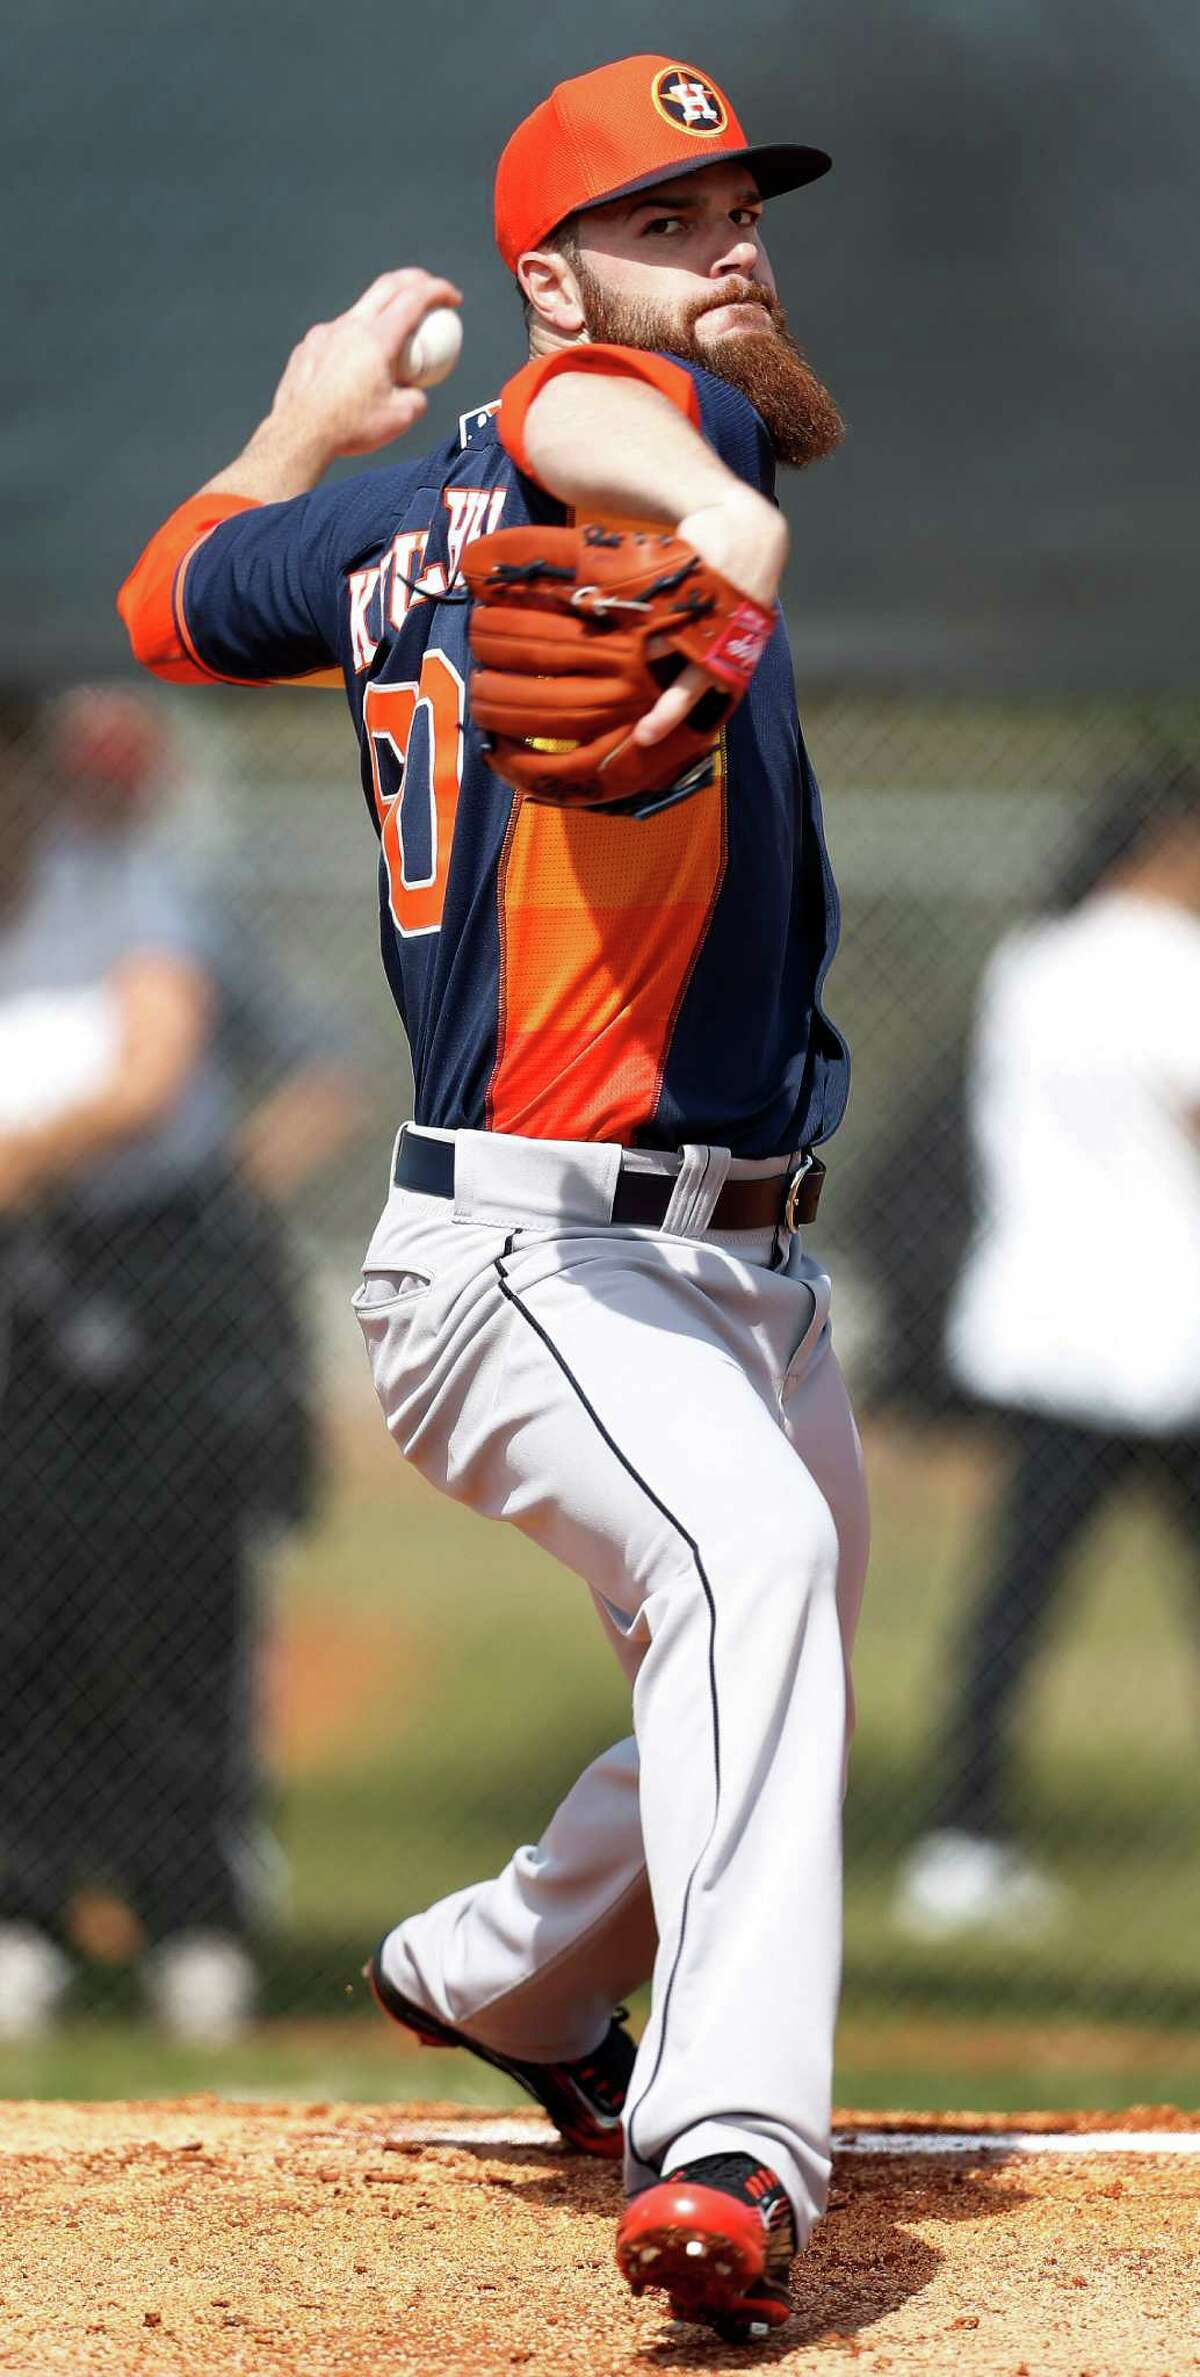 Astros pitcher Dallas Keuchel has carried over his 2014 breakout season into this year.